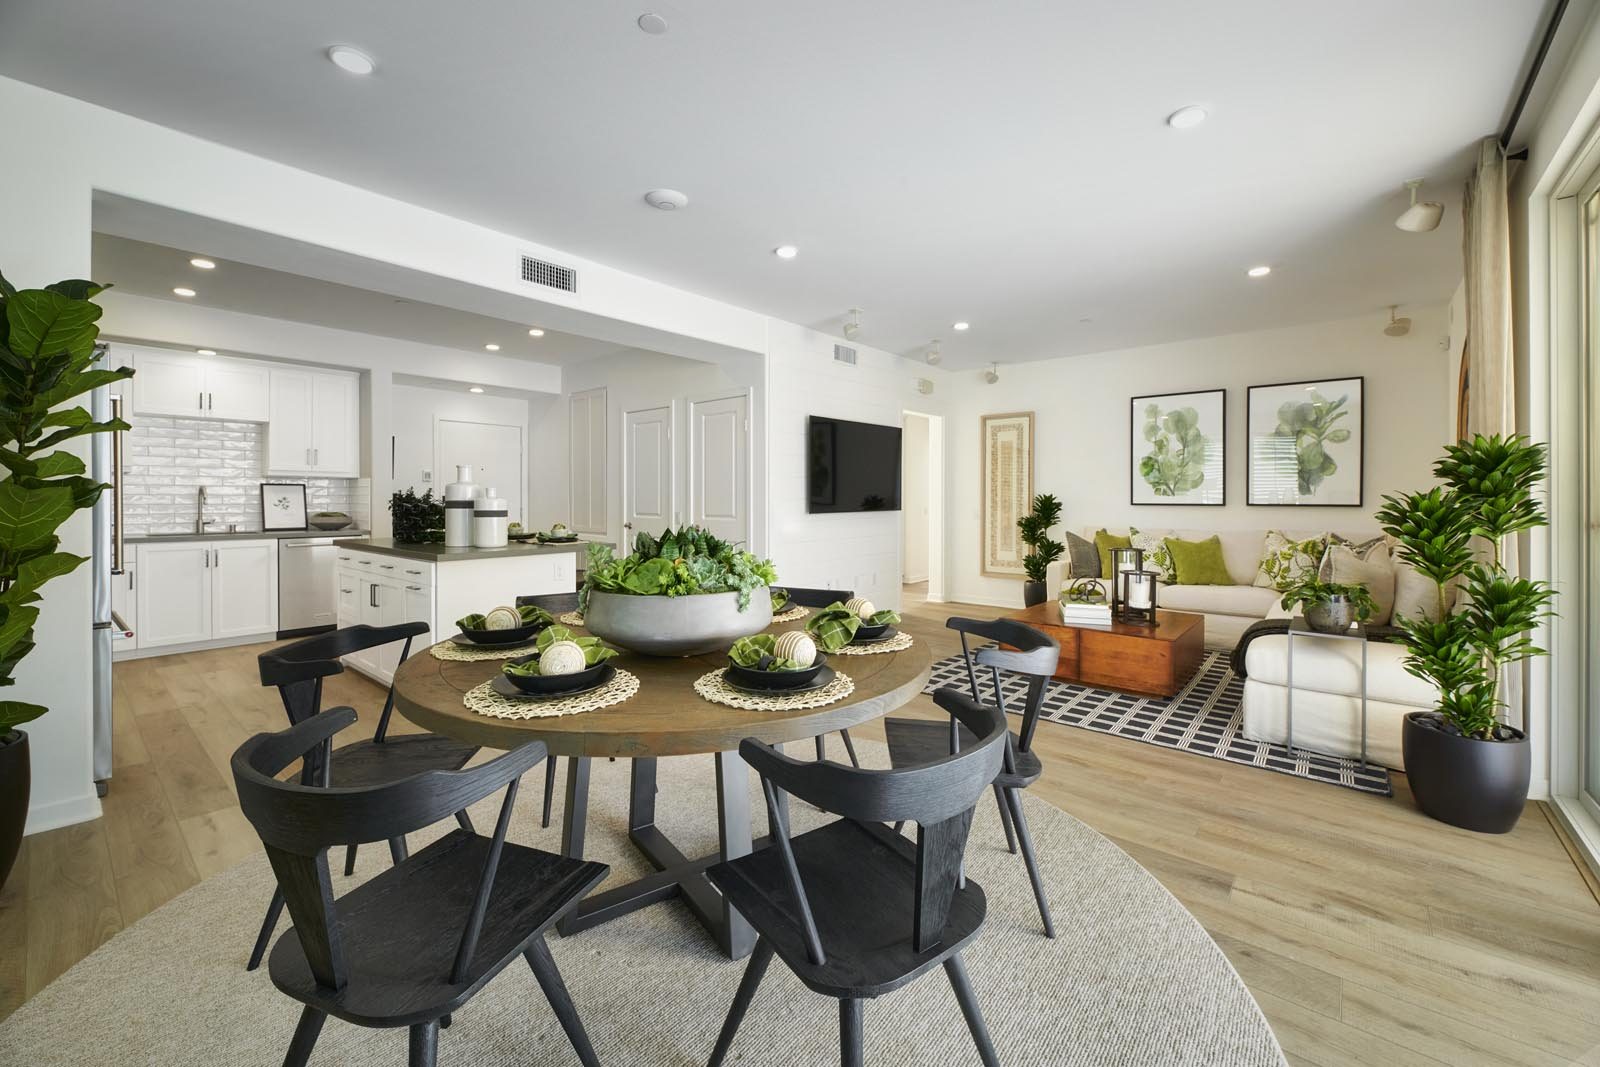 Dining Area | Residence 3 | Aspire | New Homes in Rancho Cucamonga, CA | Van Daele Homes